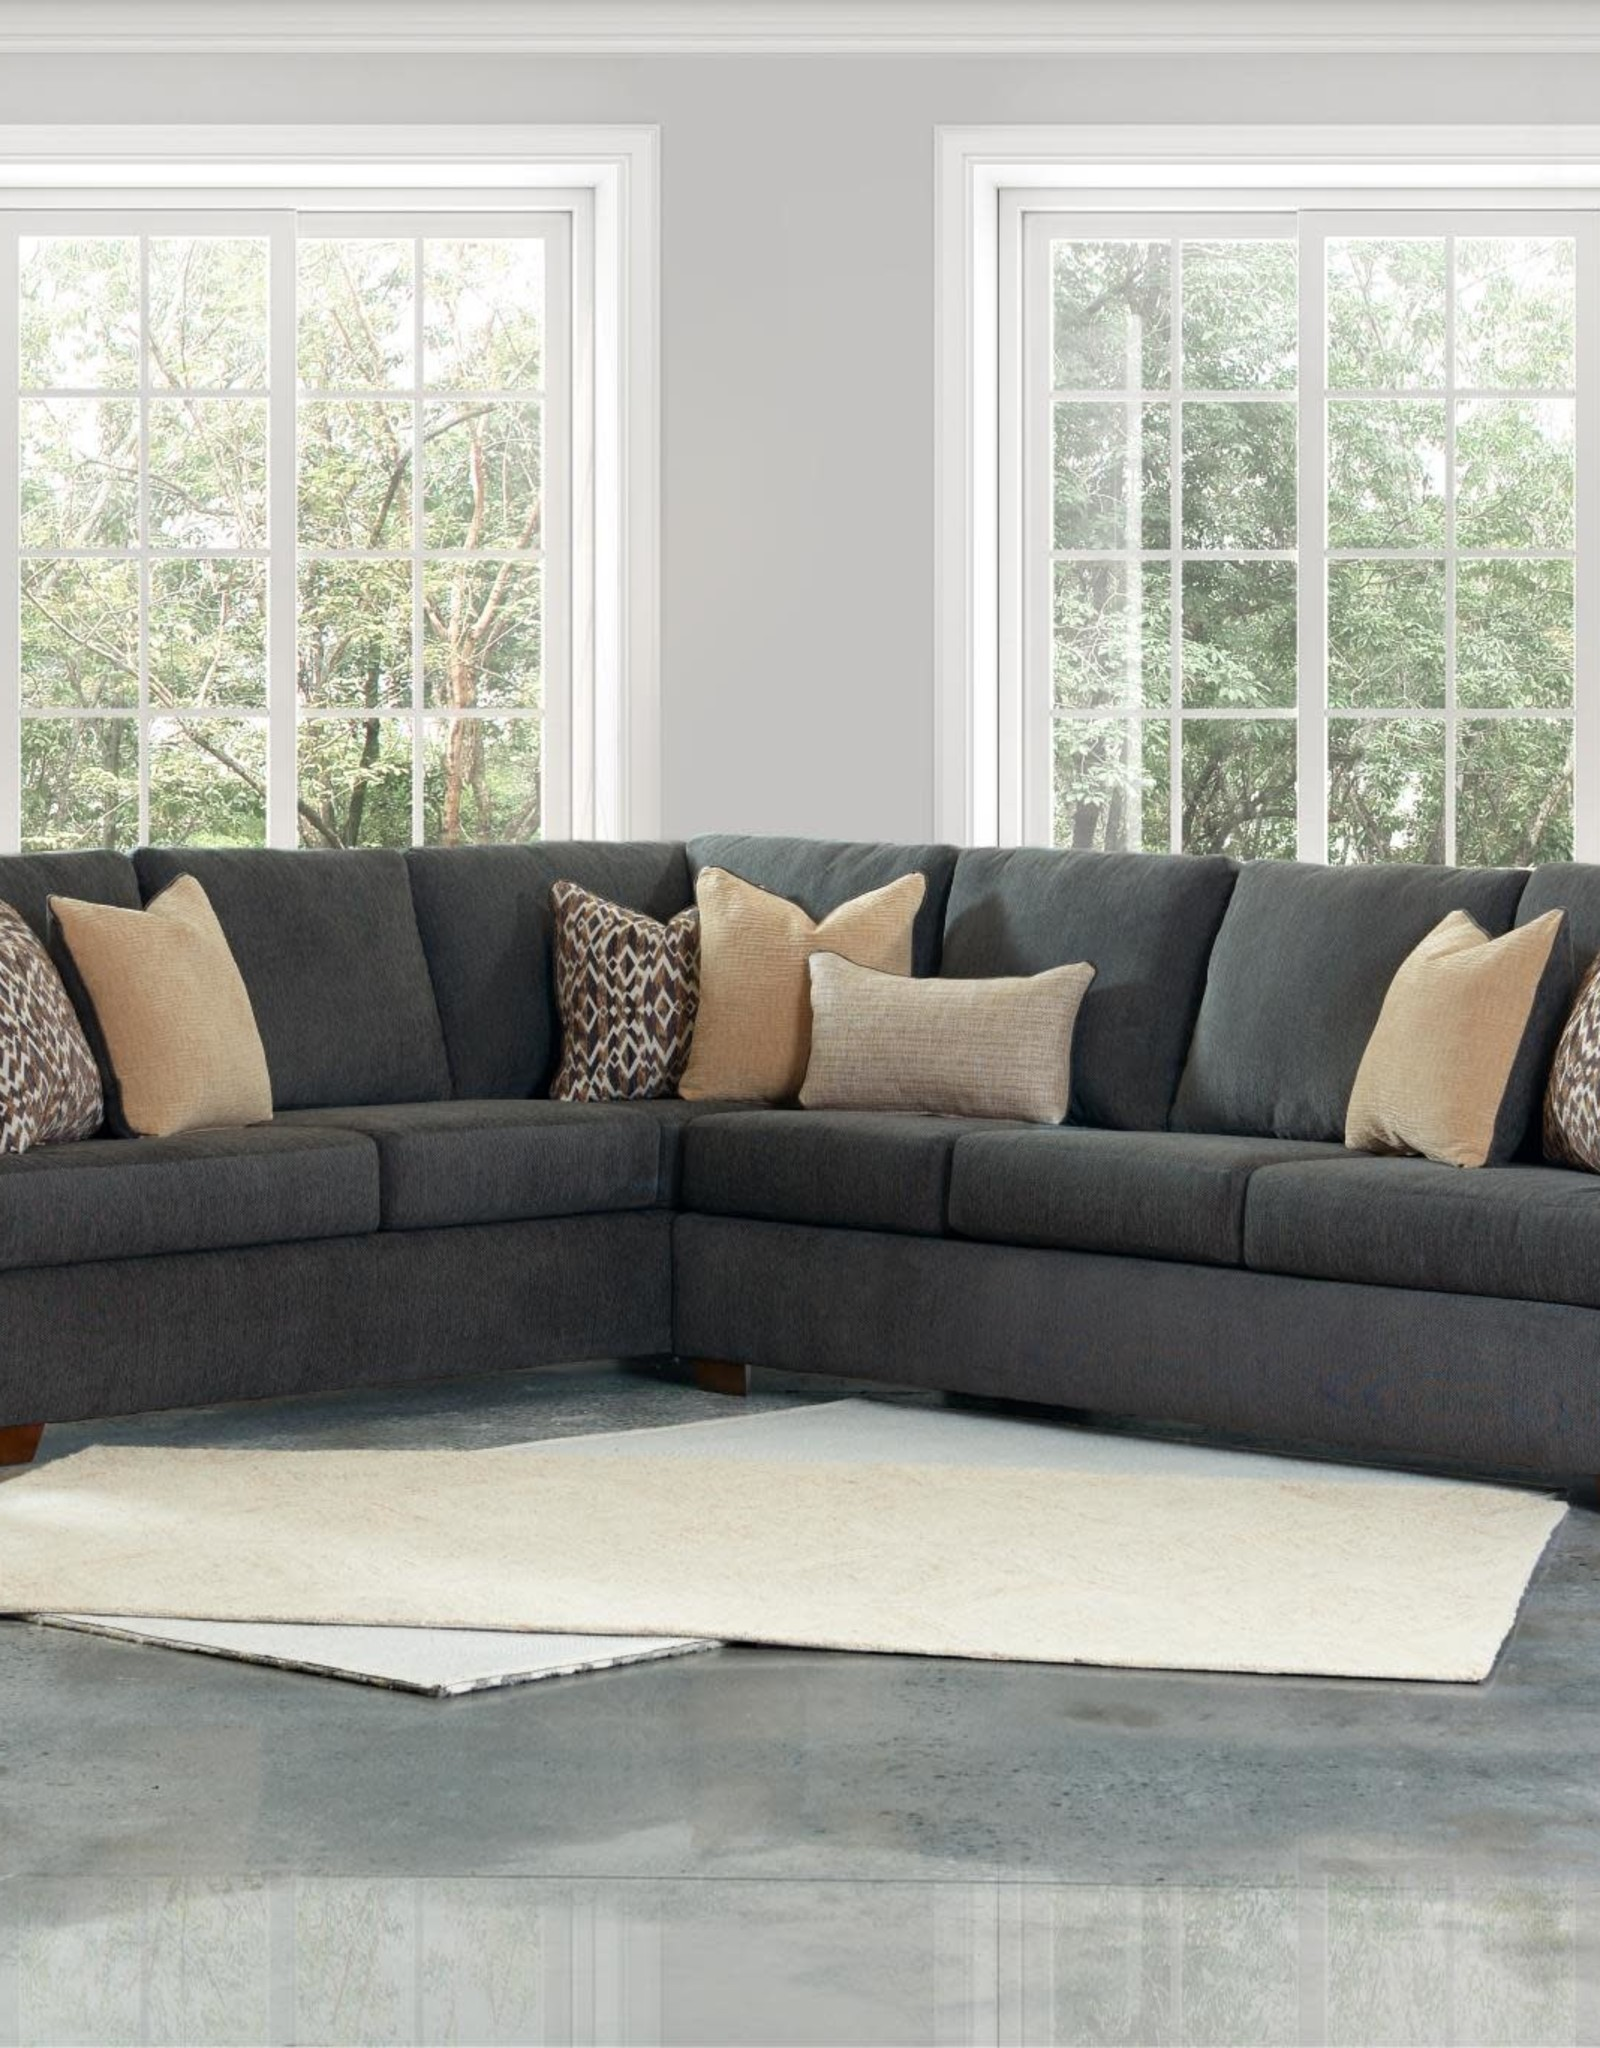 Wood House Atwood Sectional - Dalton Charcoal